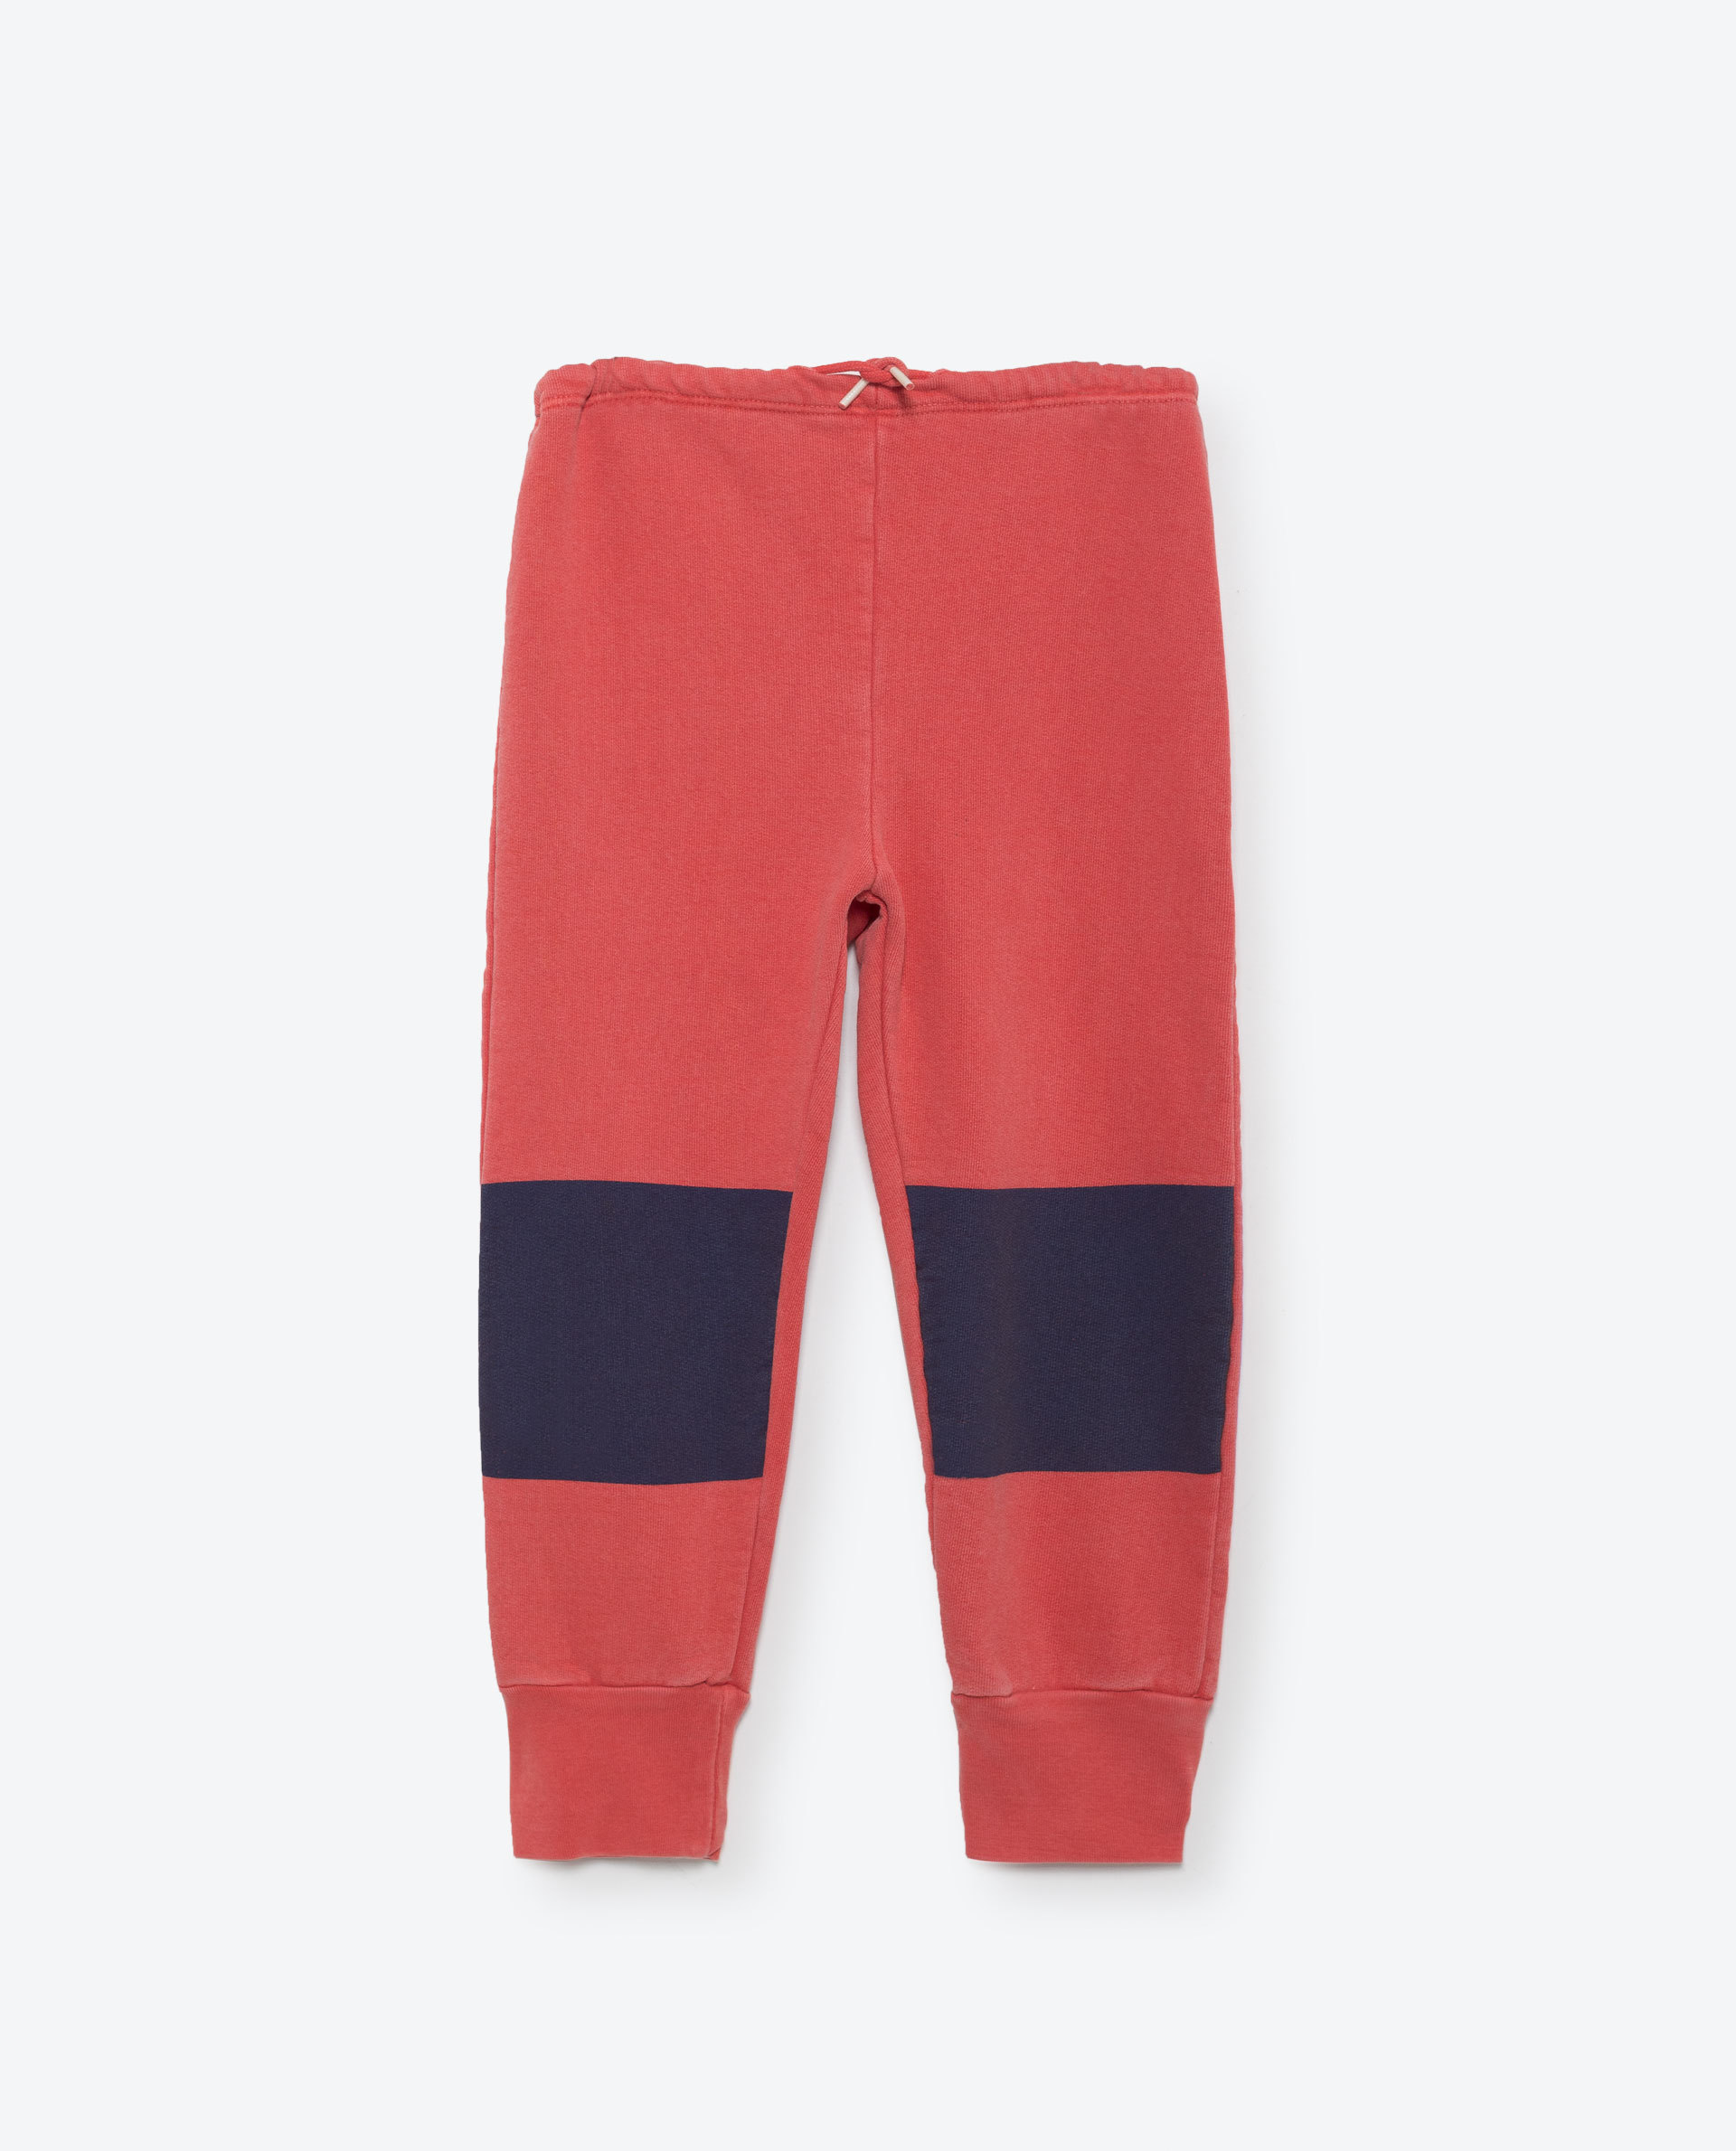 《THE ANIMALS OBSERVATORY 2016AW》MAMMOTH KIDS PANTS / Red Knees